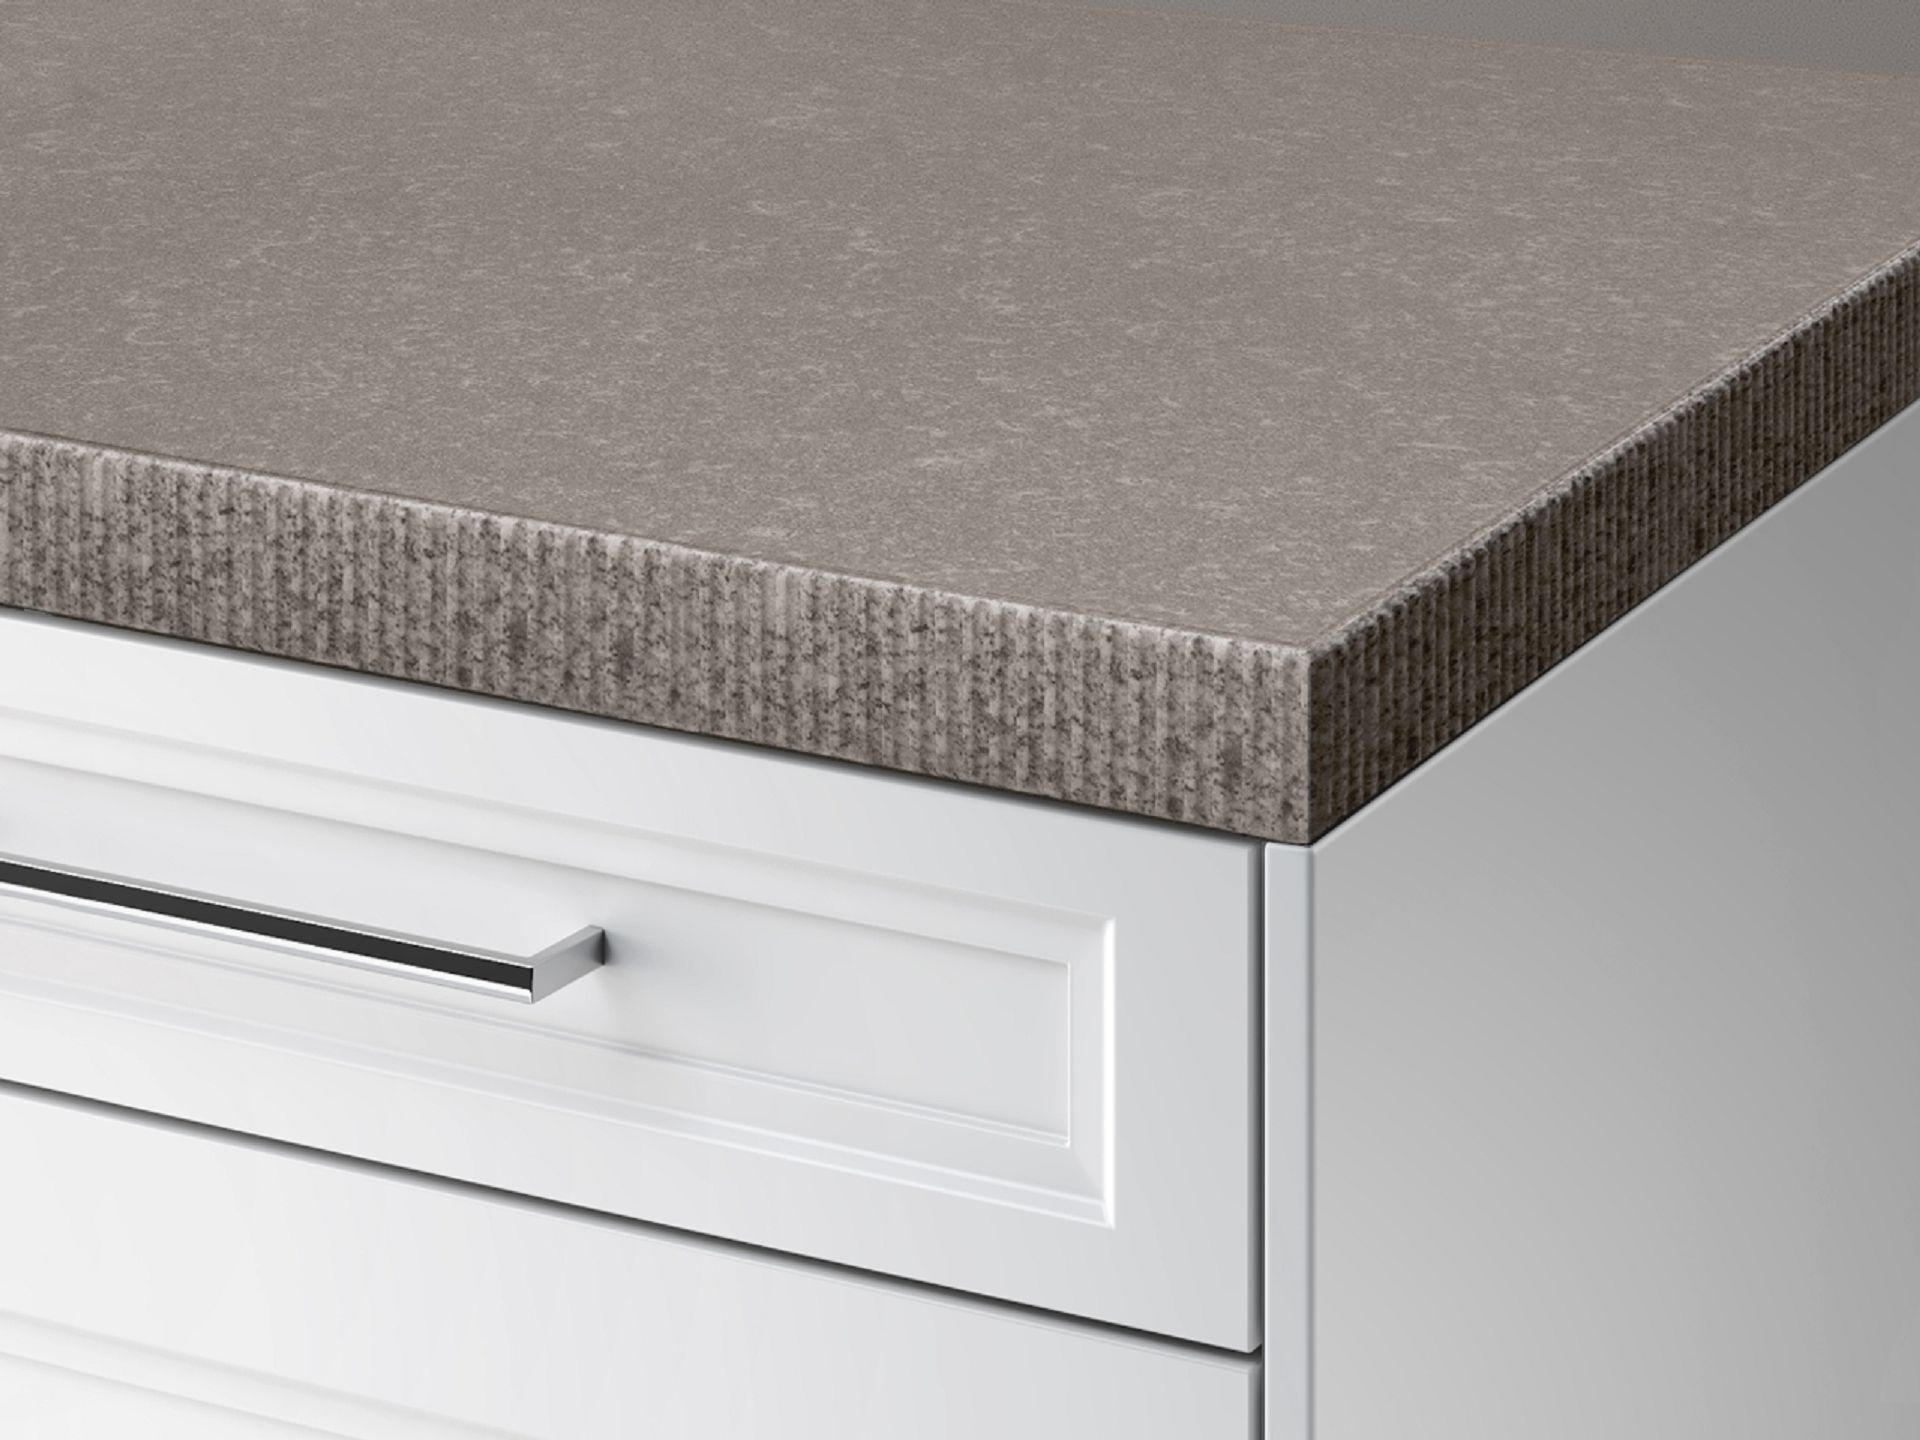 SieMatic StoneDesign kitchen countertop with chiseled edge